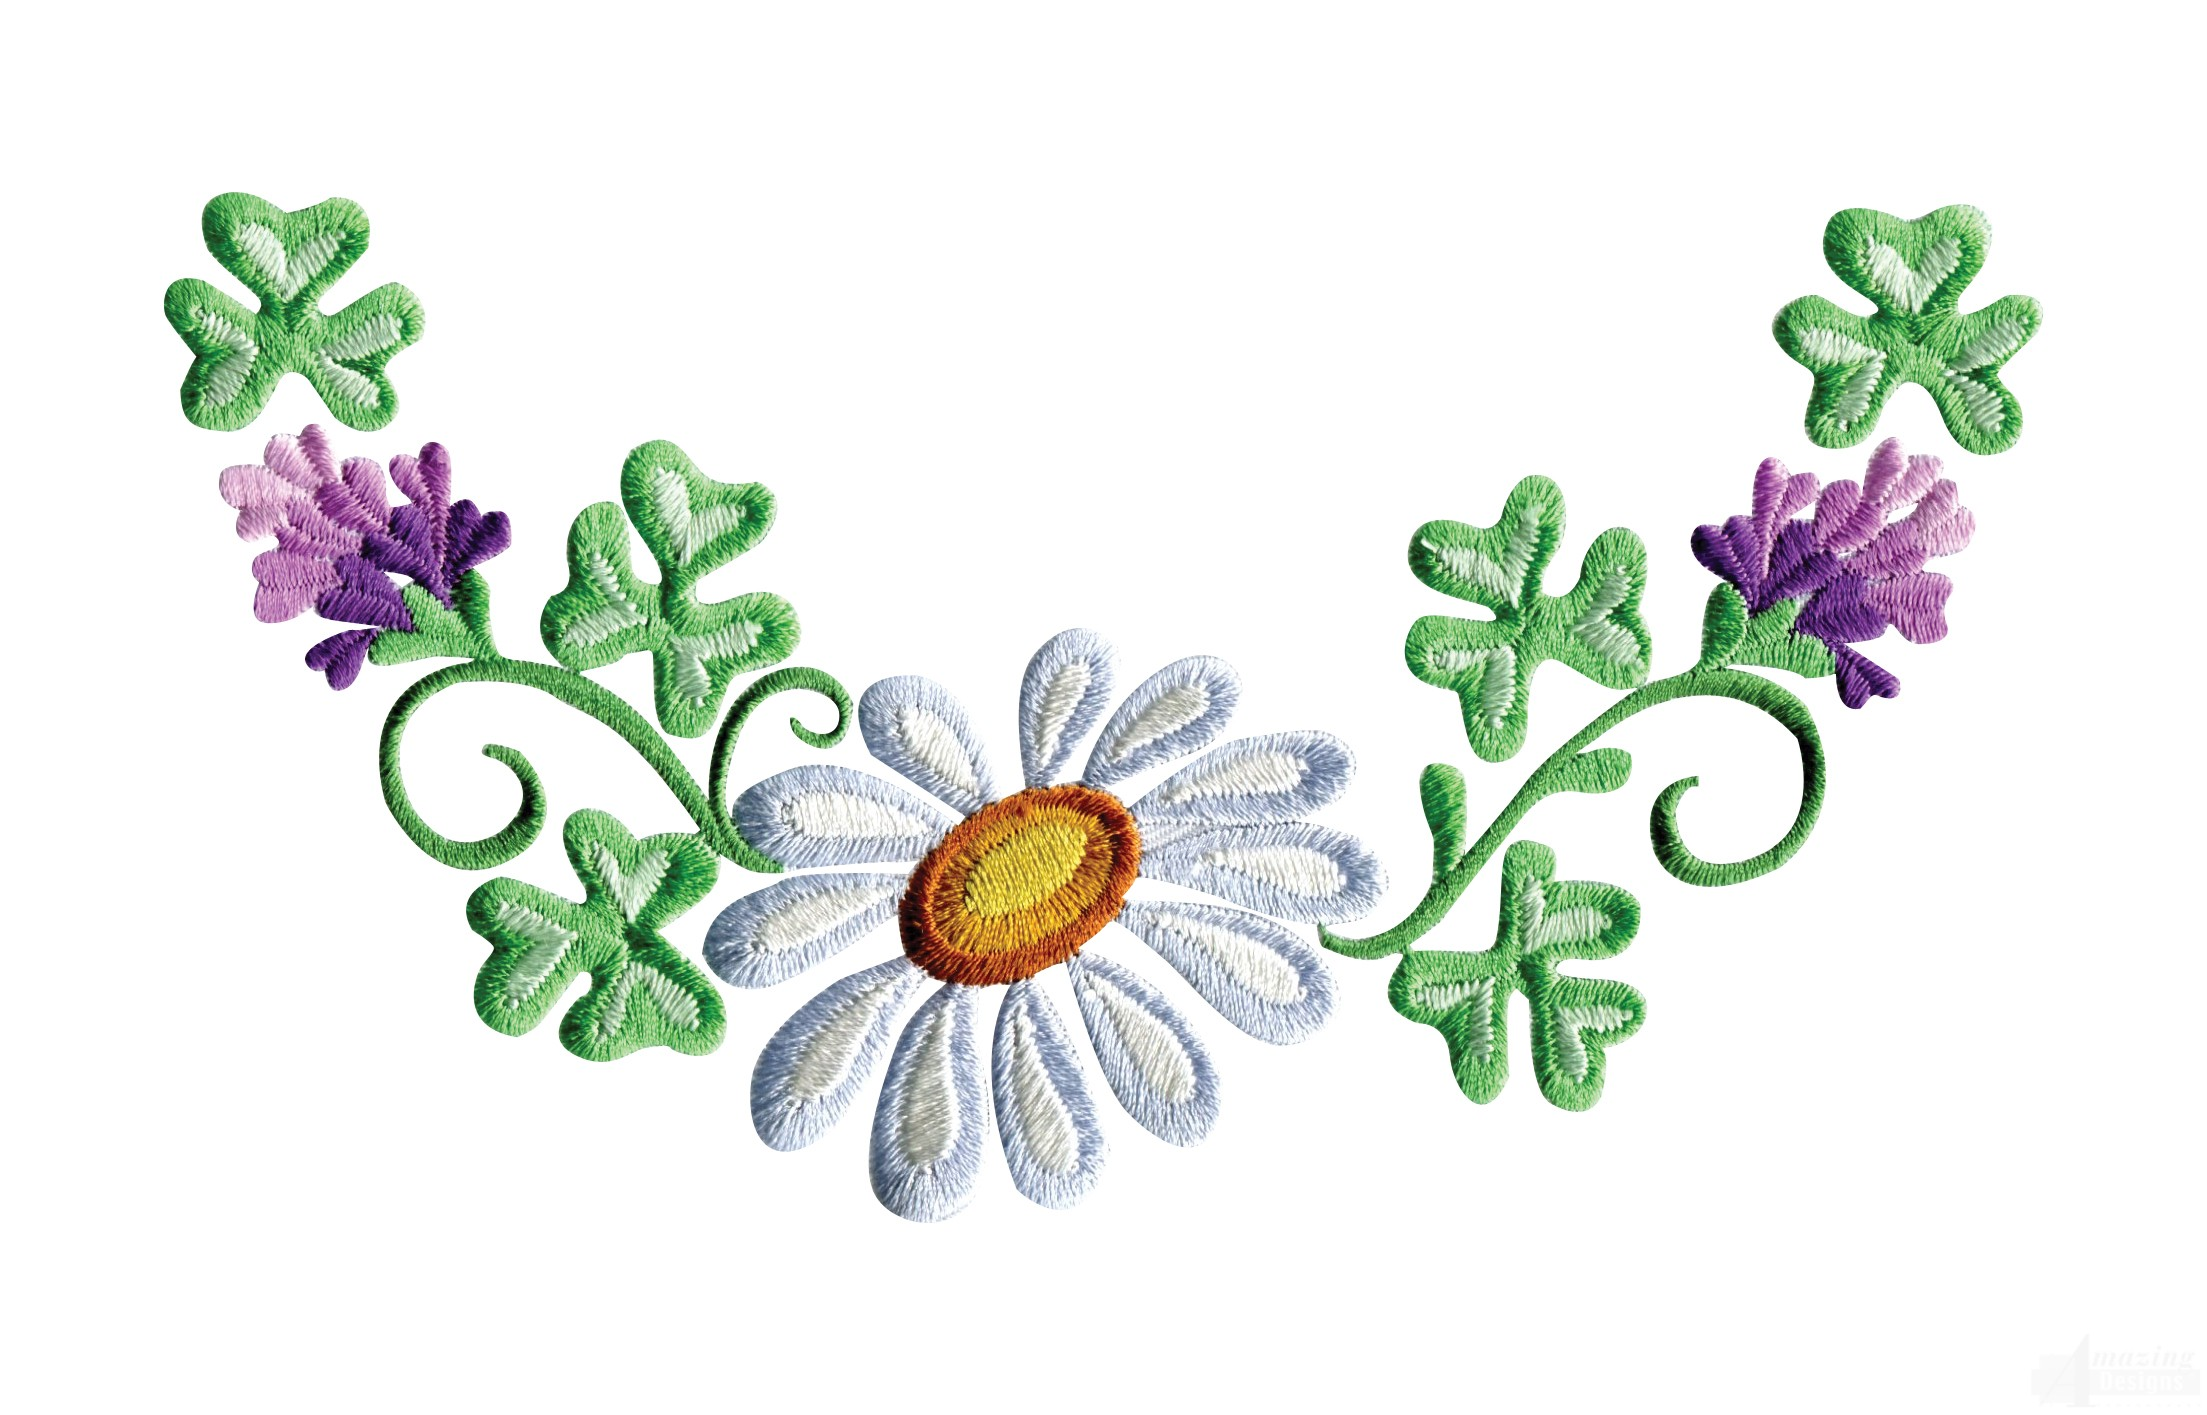 Simple clipart floral design #11